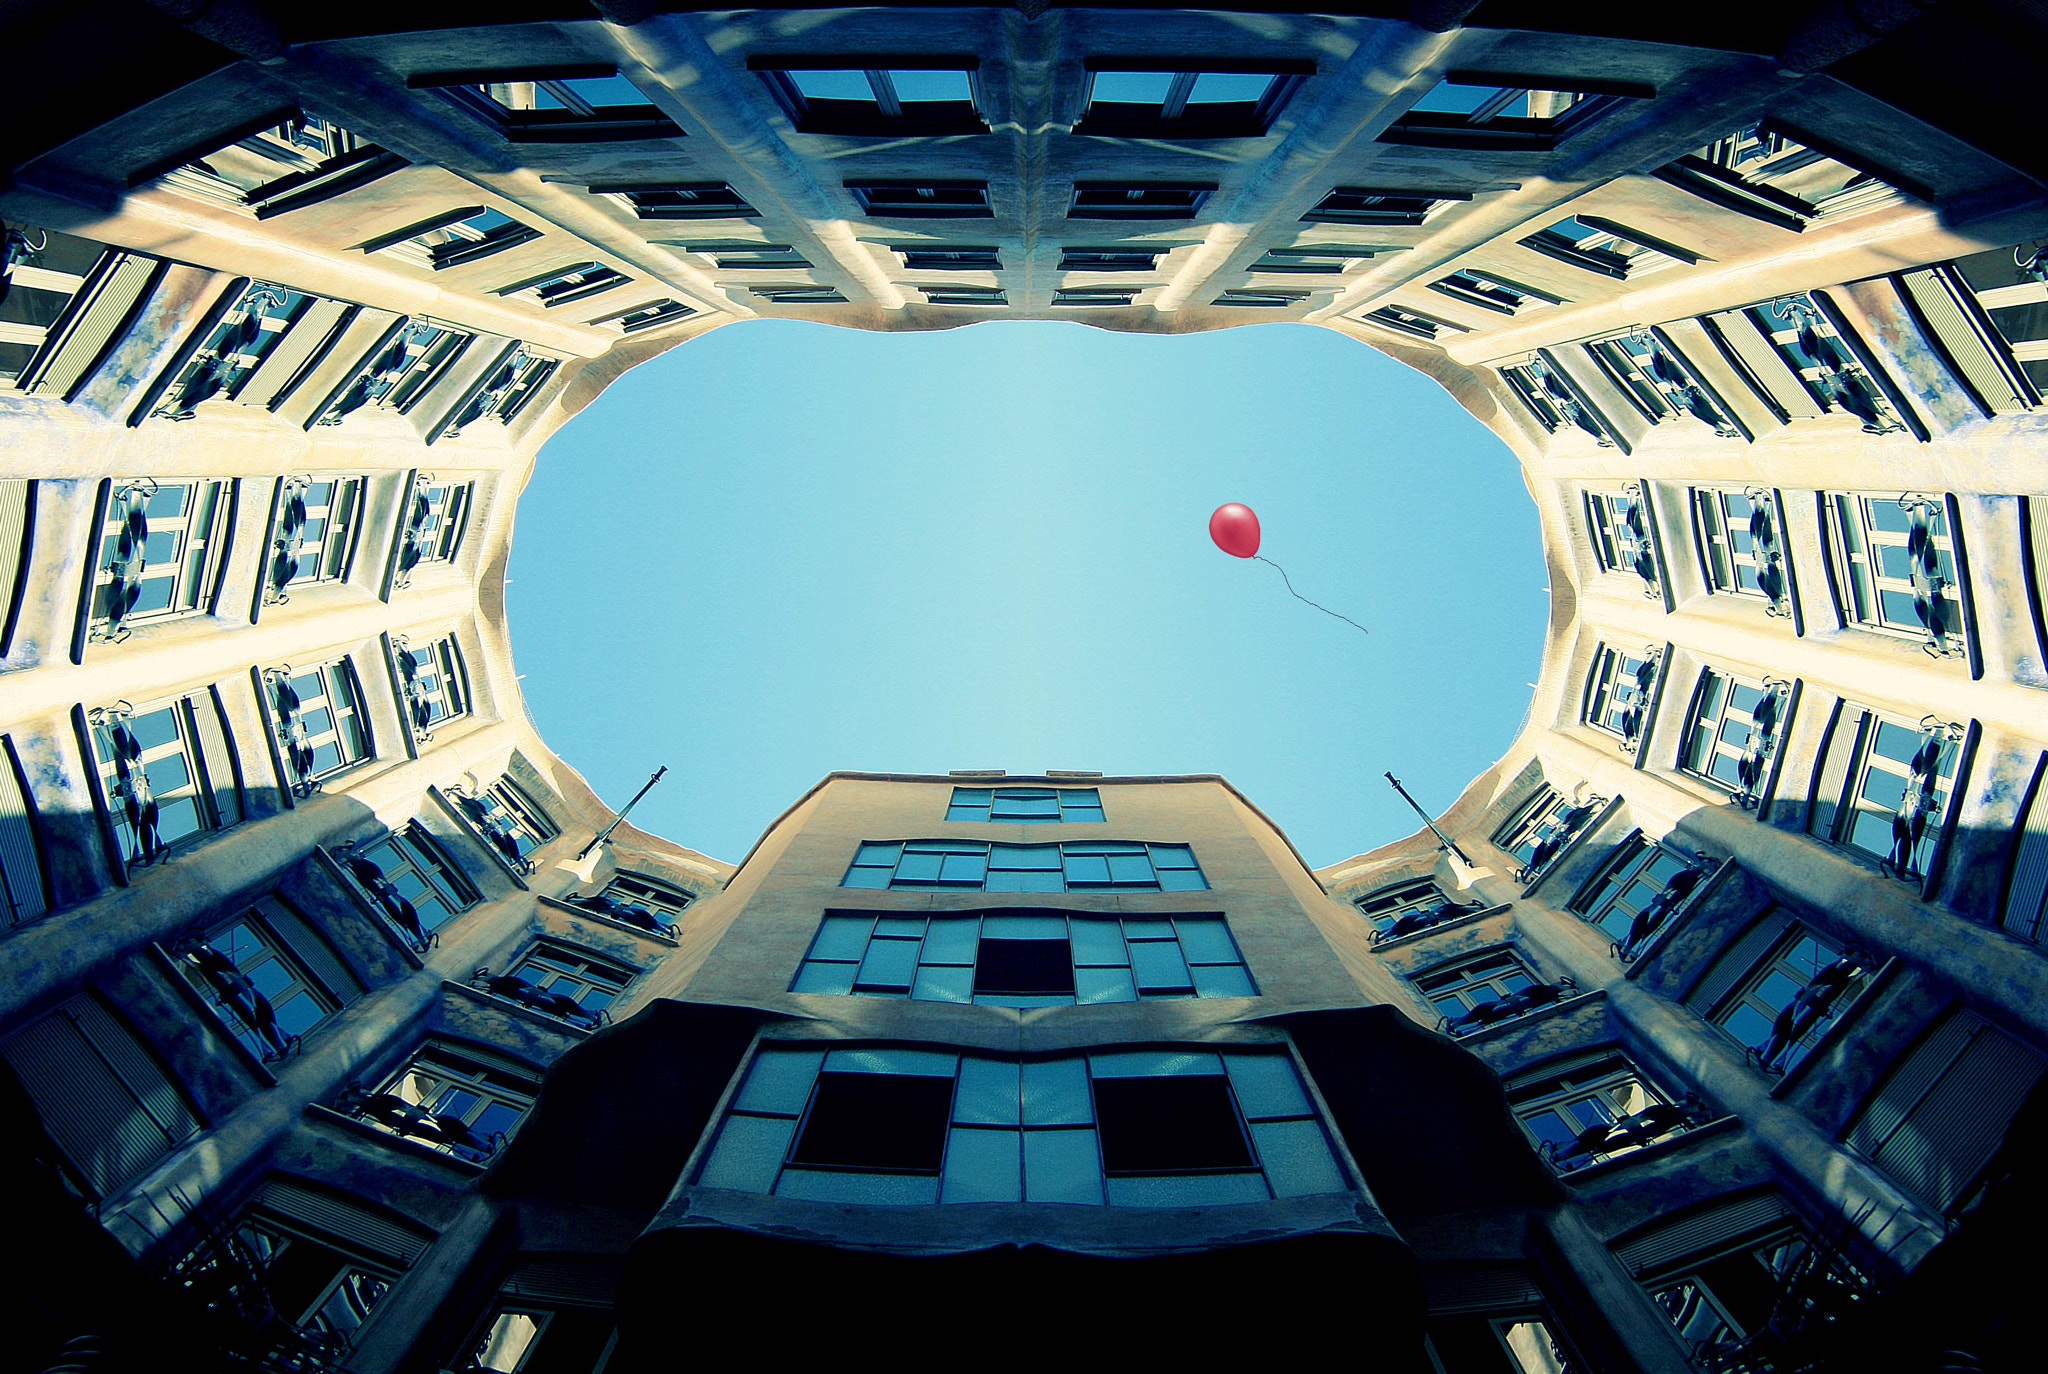 Photograph pedrera by coleopter ! on 500px